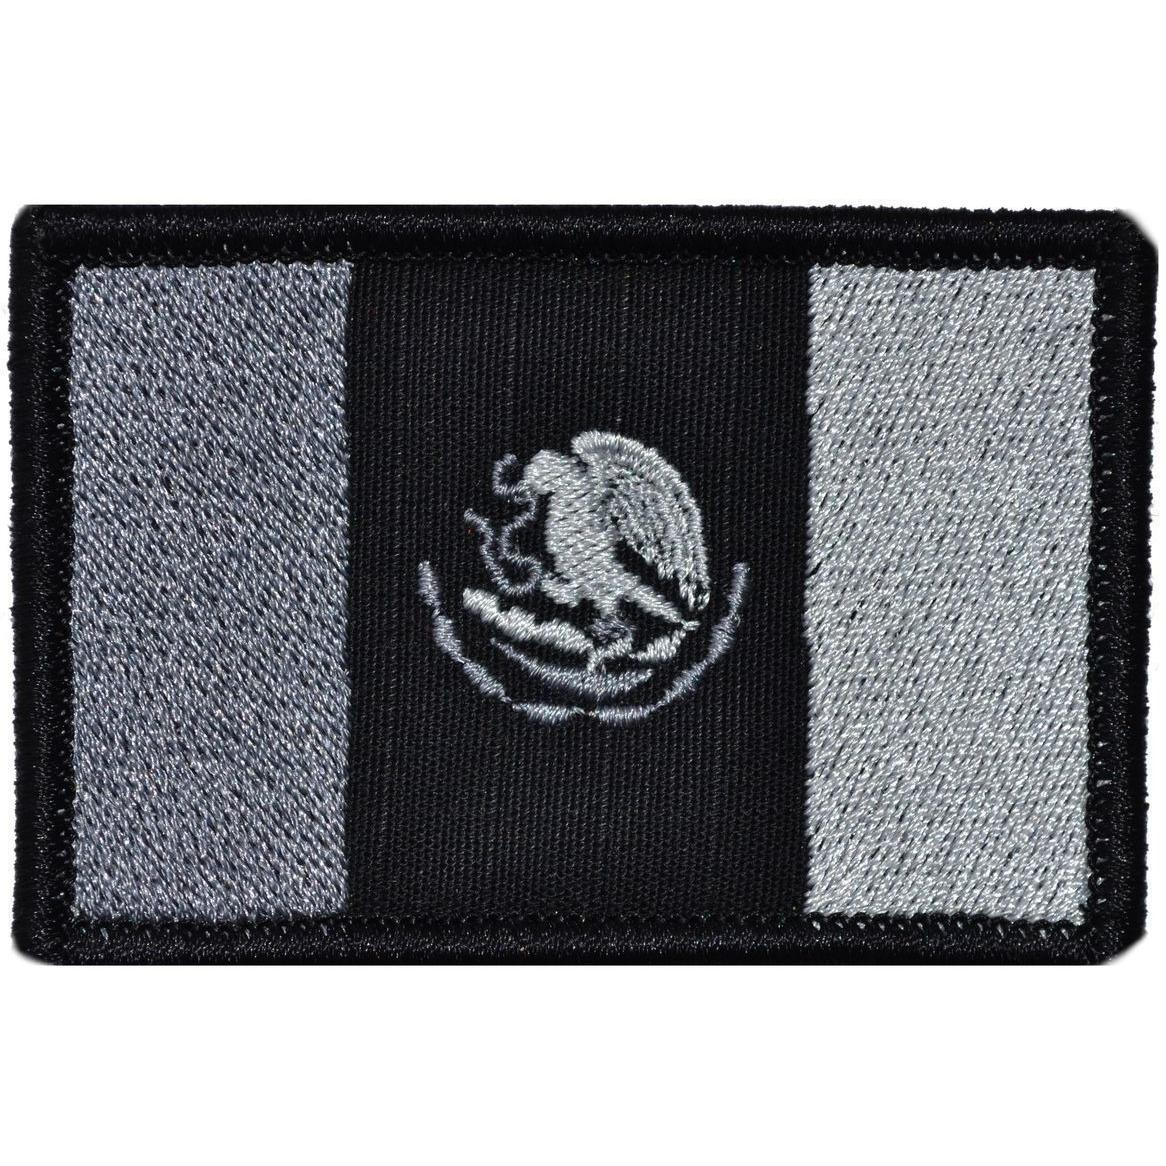 Mexico Flag - 2x3 Patch